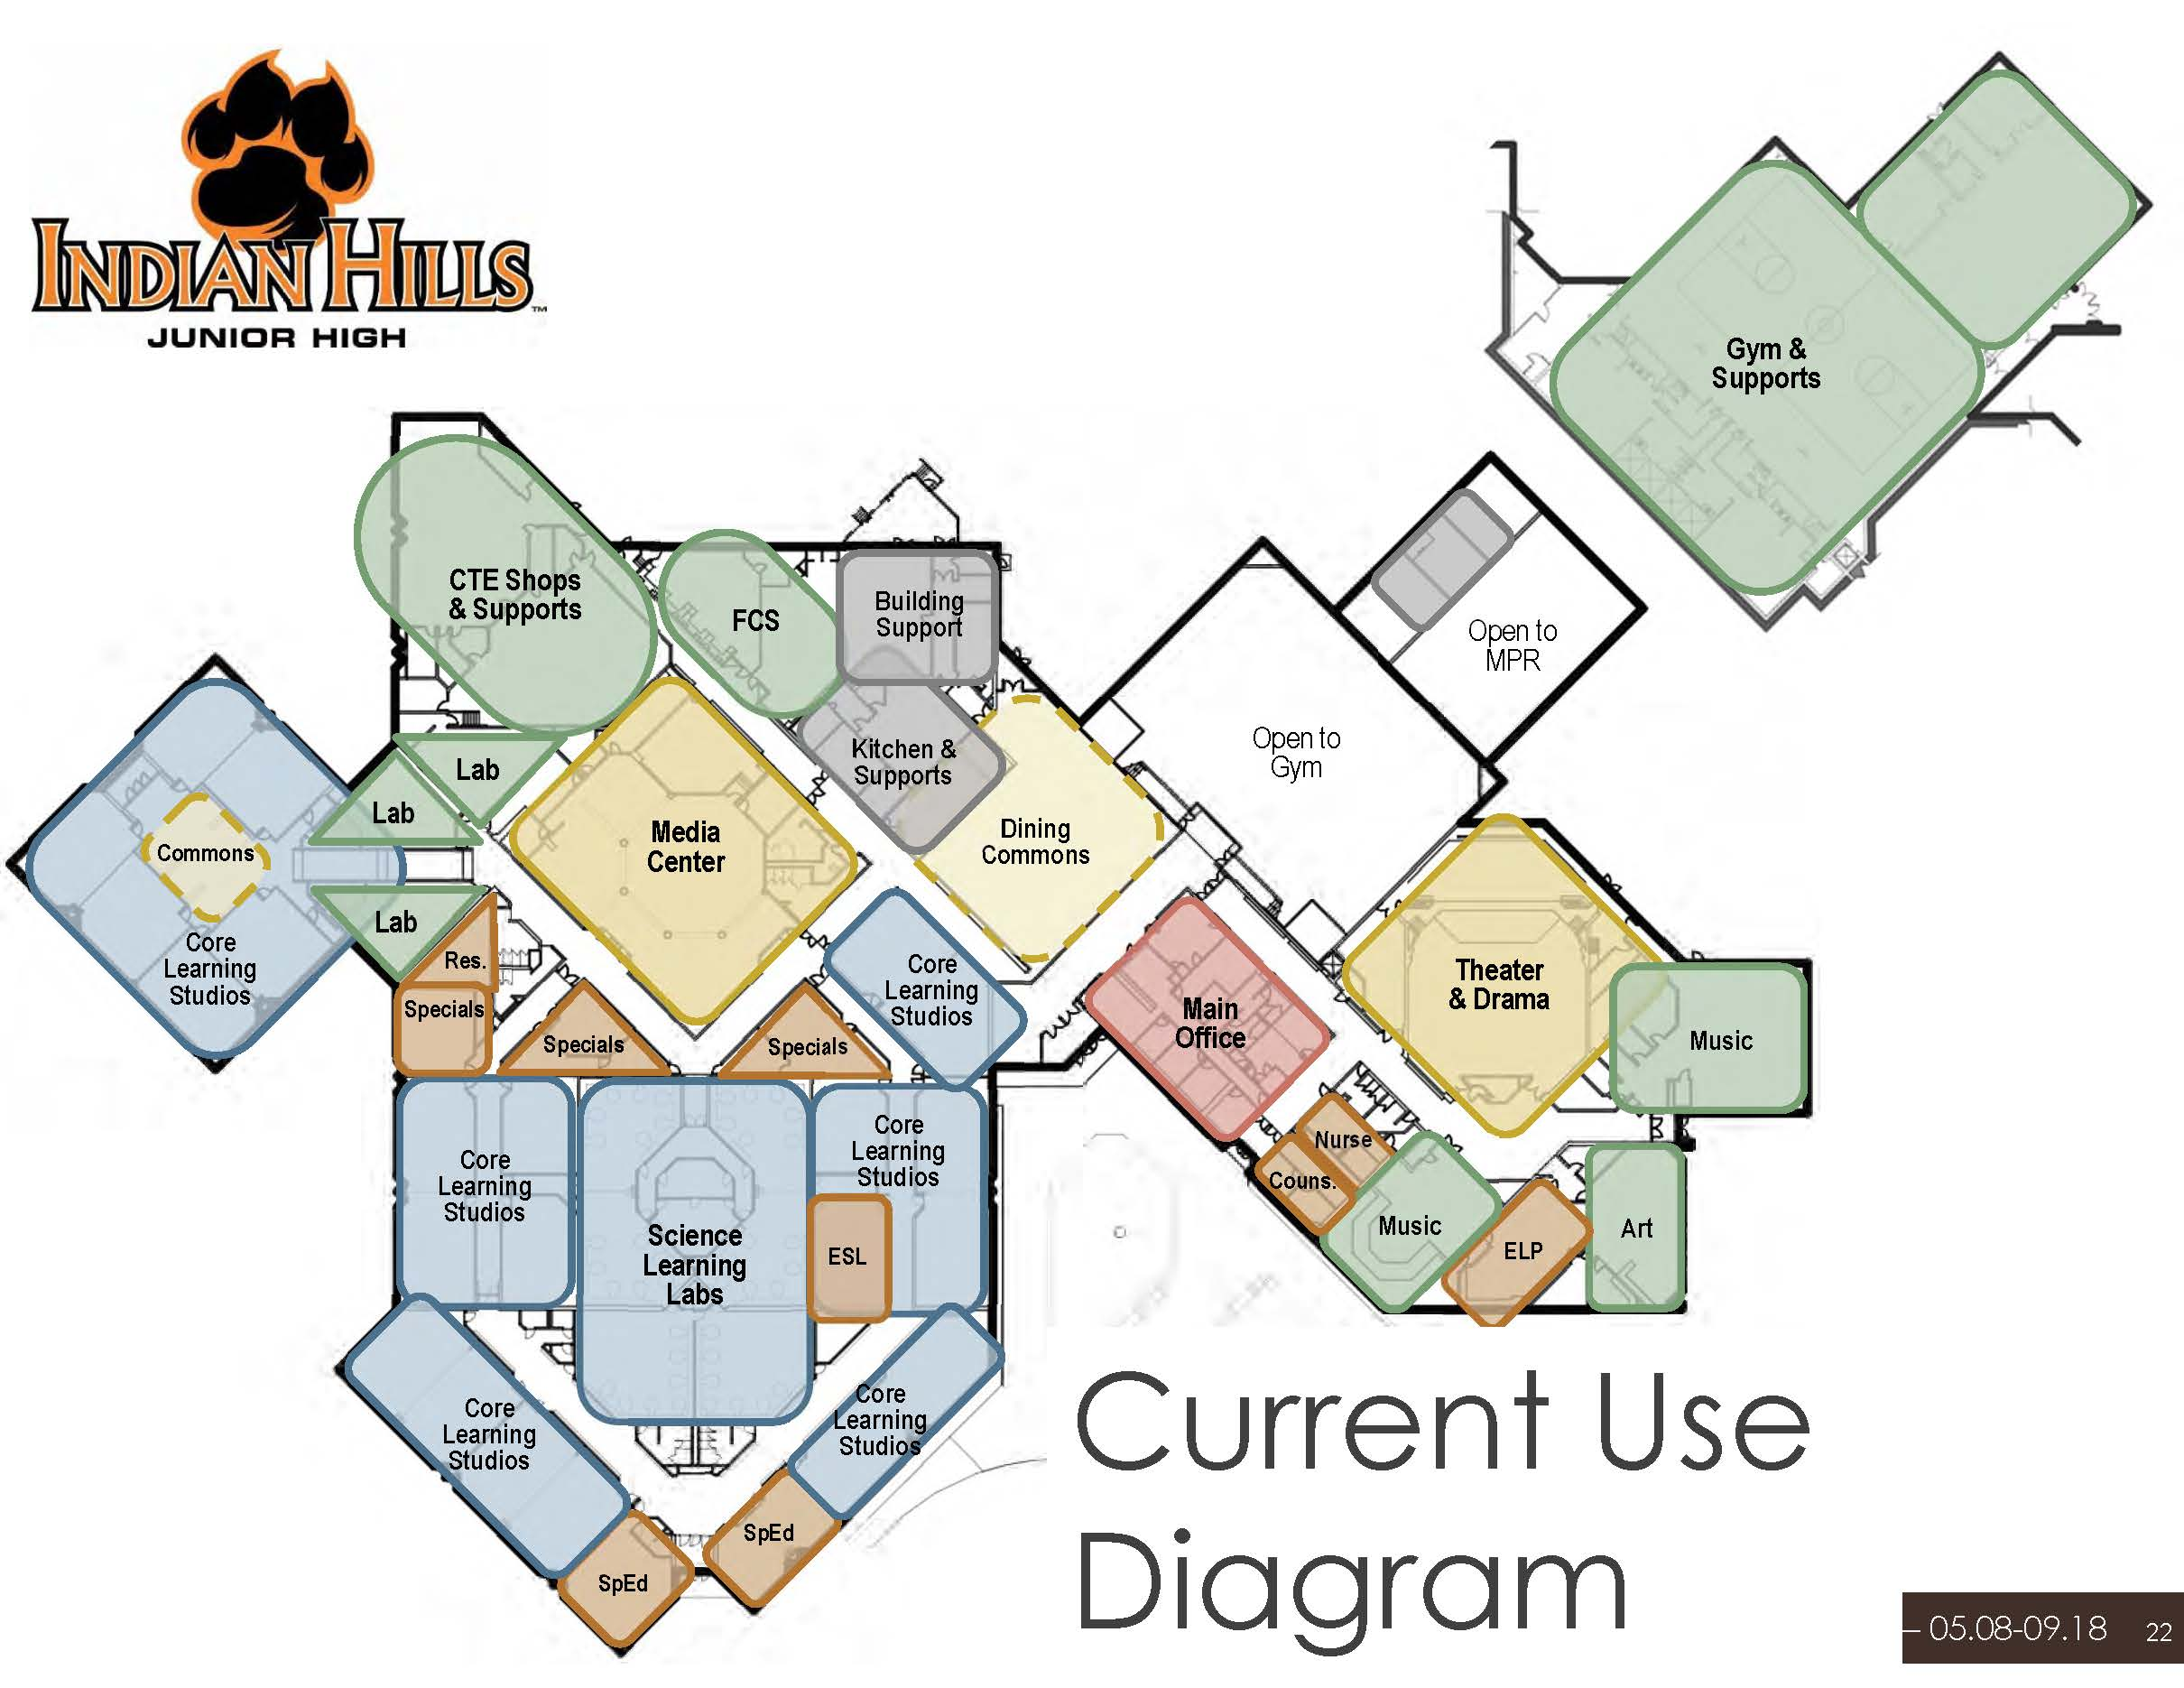 CURRENT USE DIAGRAM  This graphic indicates how each space is currently utilized seventh and eighth grade in the building.   Click on the graphic to view full image.